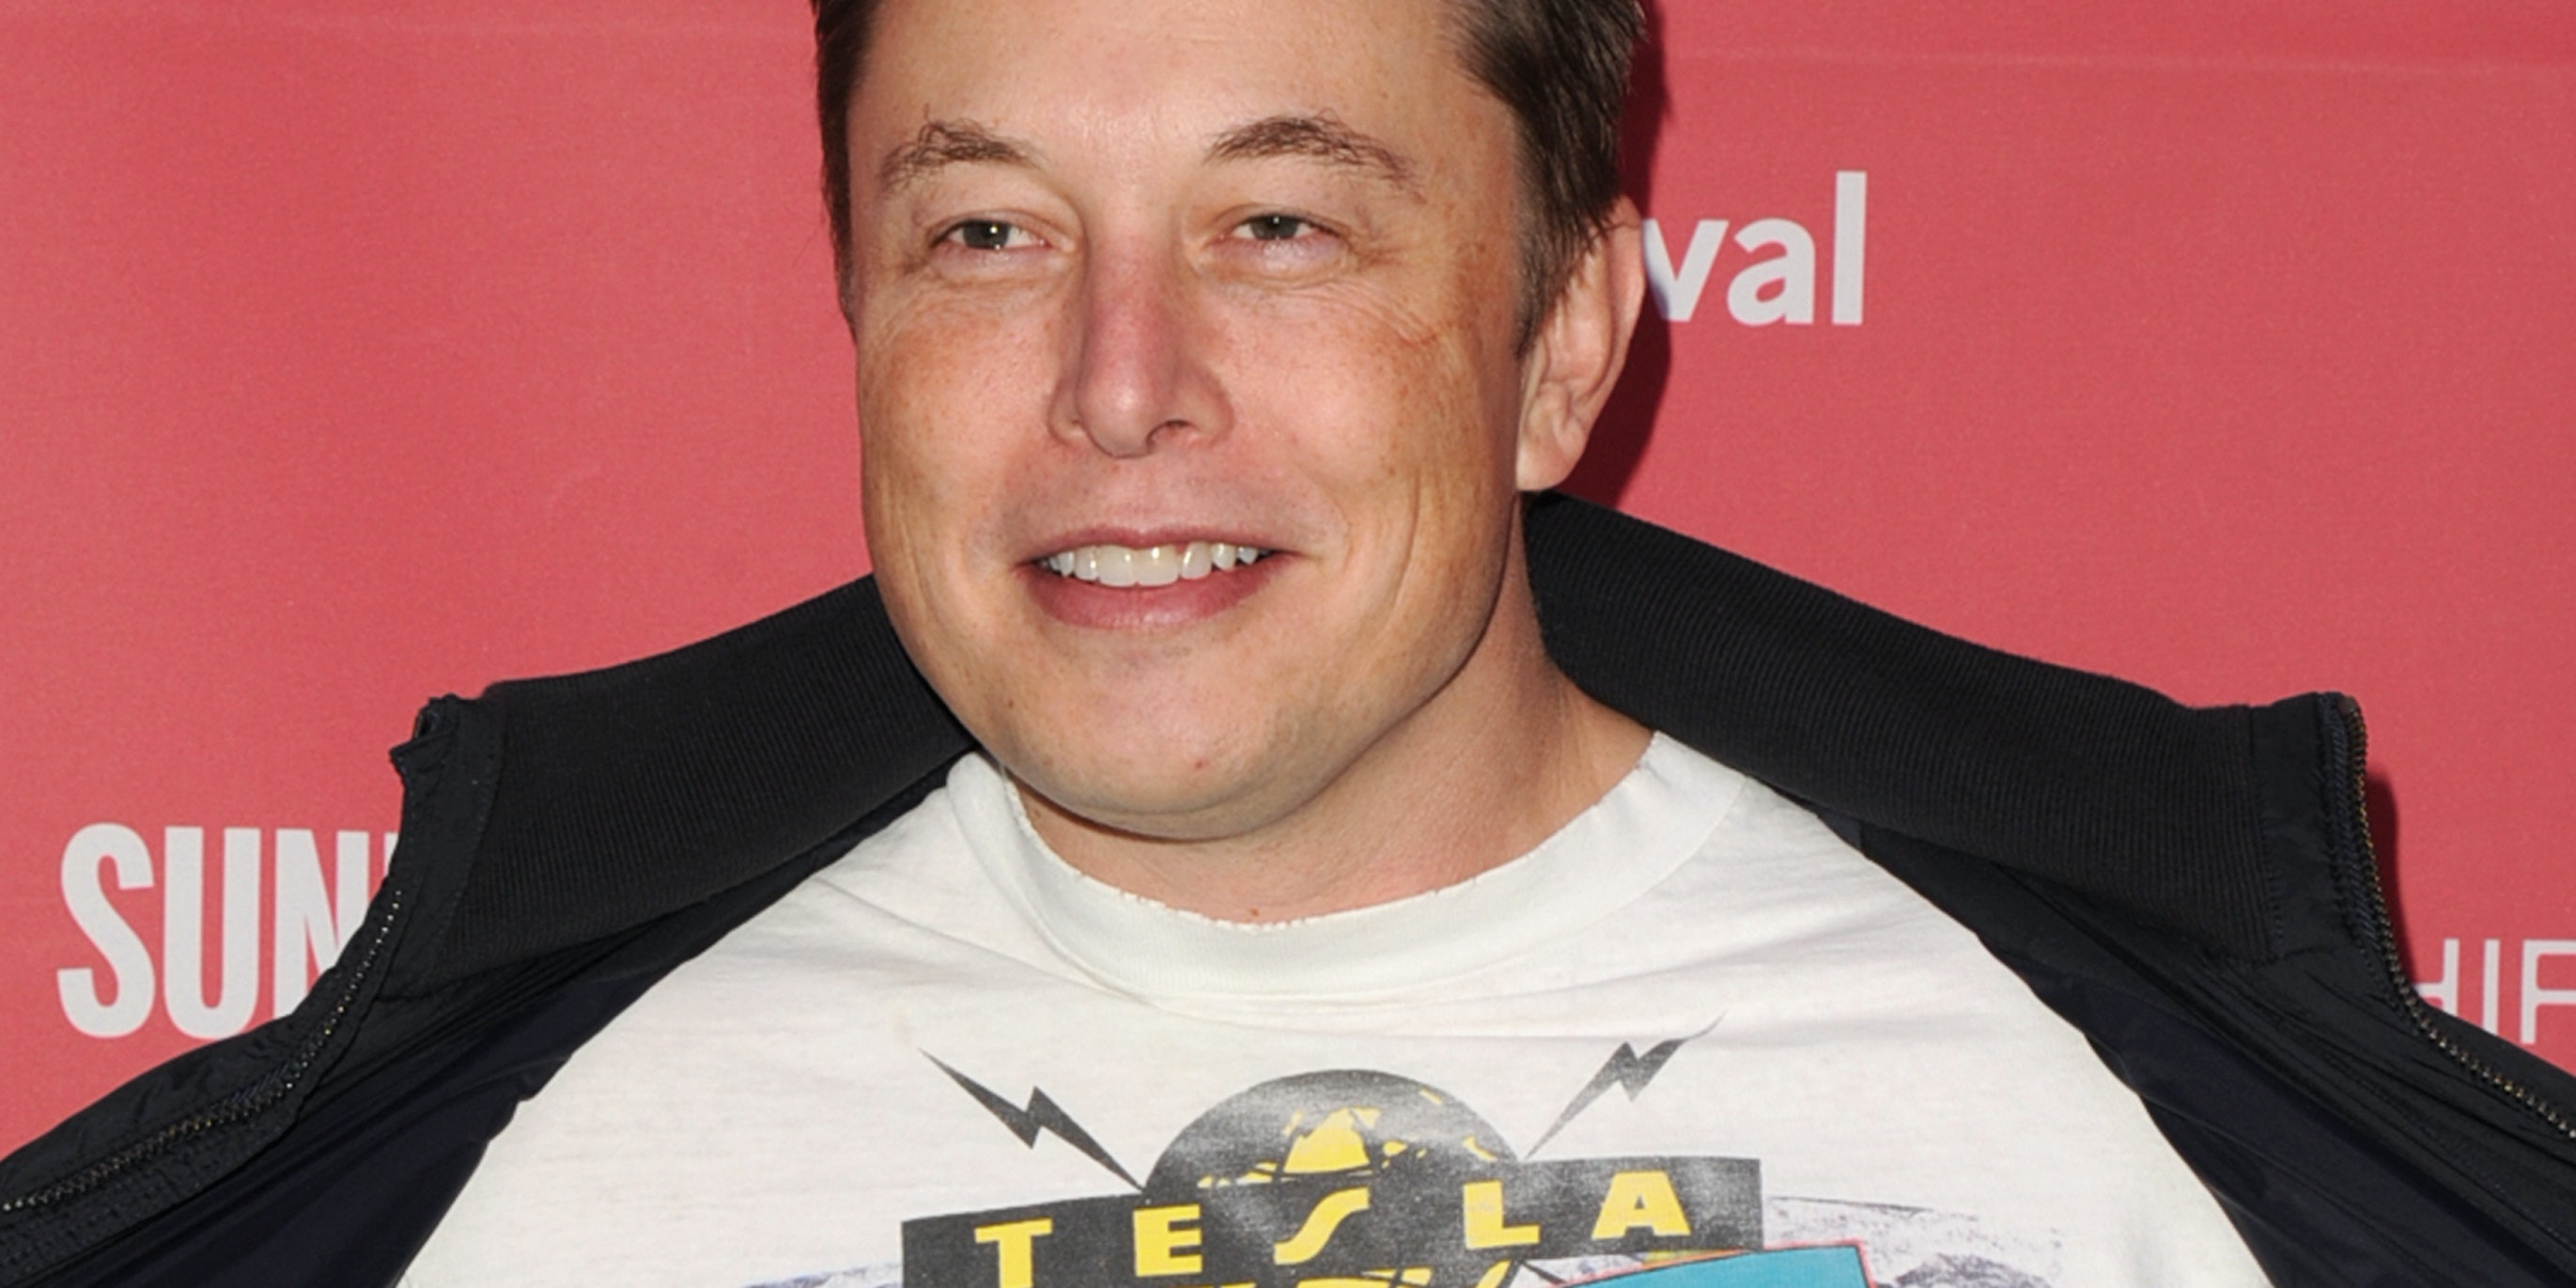 PARK CITY, UT - JANUARY 24:  CEO and Chief Product Architect of Tesla Motors, Elon Musk attends the 'RACING EXTINCTION' Premiere at The Marc Theater on January 24, 2015 in Park City, Utah.  (Photo by Lily Lawrence/Getty Images for Oceanic Preservation Society)